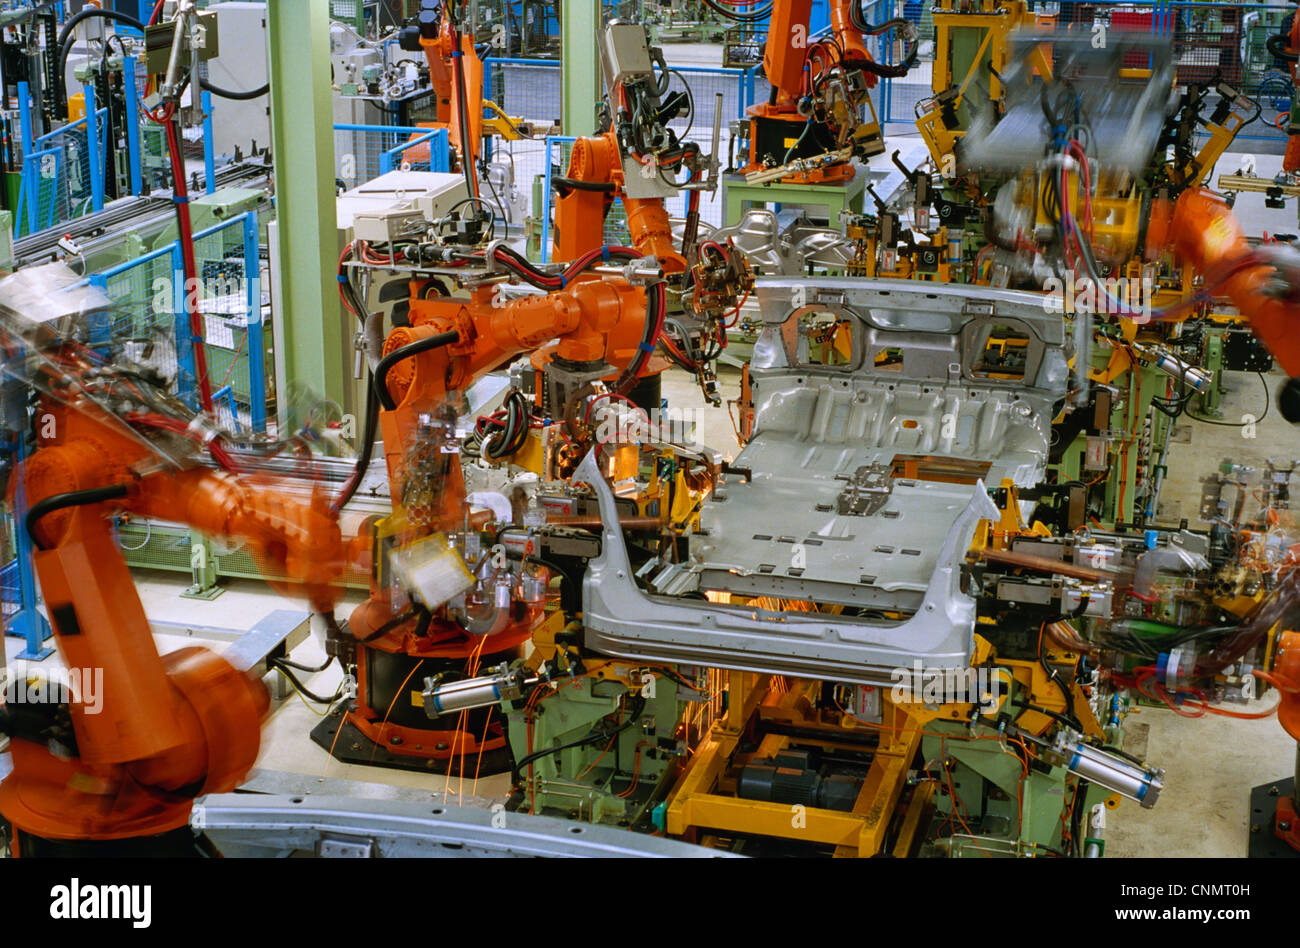 robots welding in a car factory - Stock Image